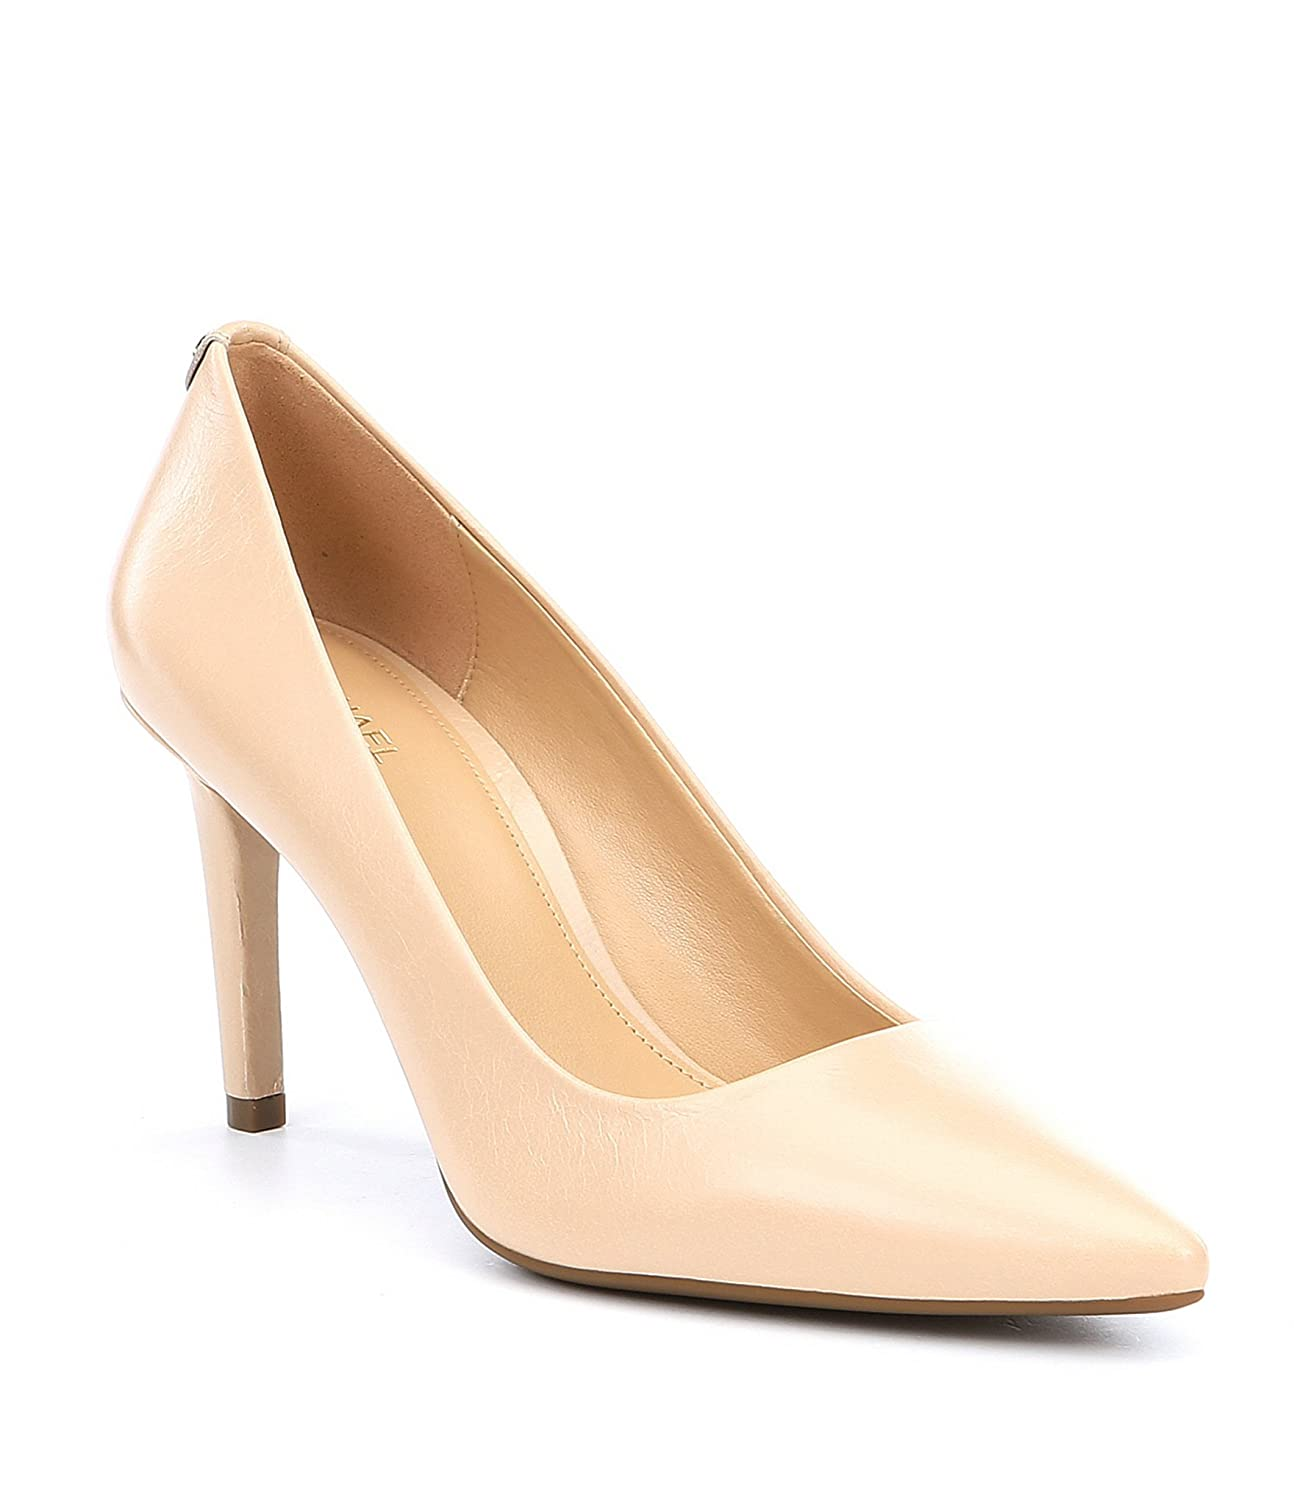 f2cbecacd Amazon.com | Michael Kors Womens Dorothy Flex Pumps Leather Pointed Toe,  Oyster, Size 8.5 | Shoes